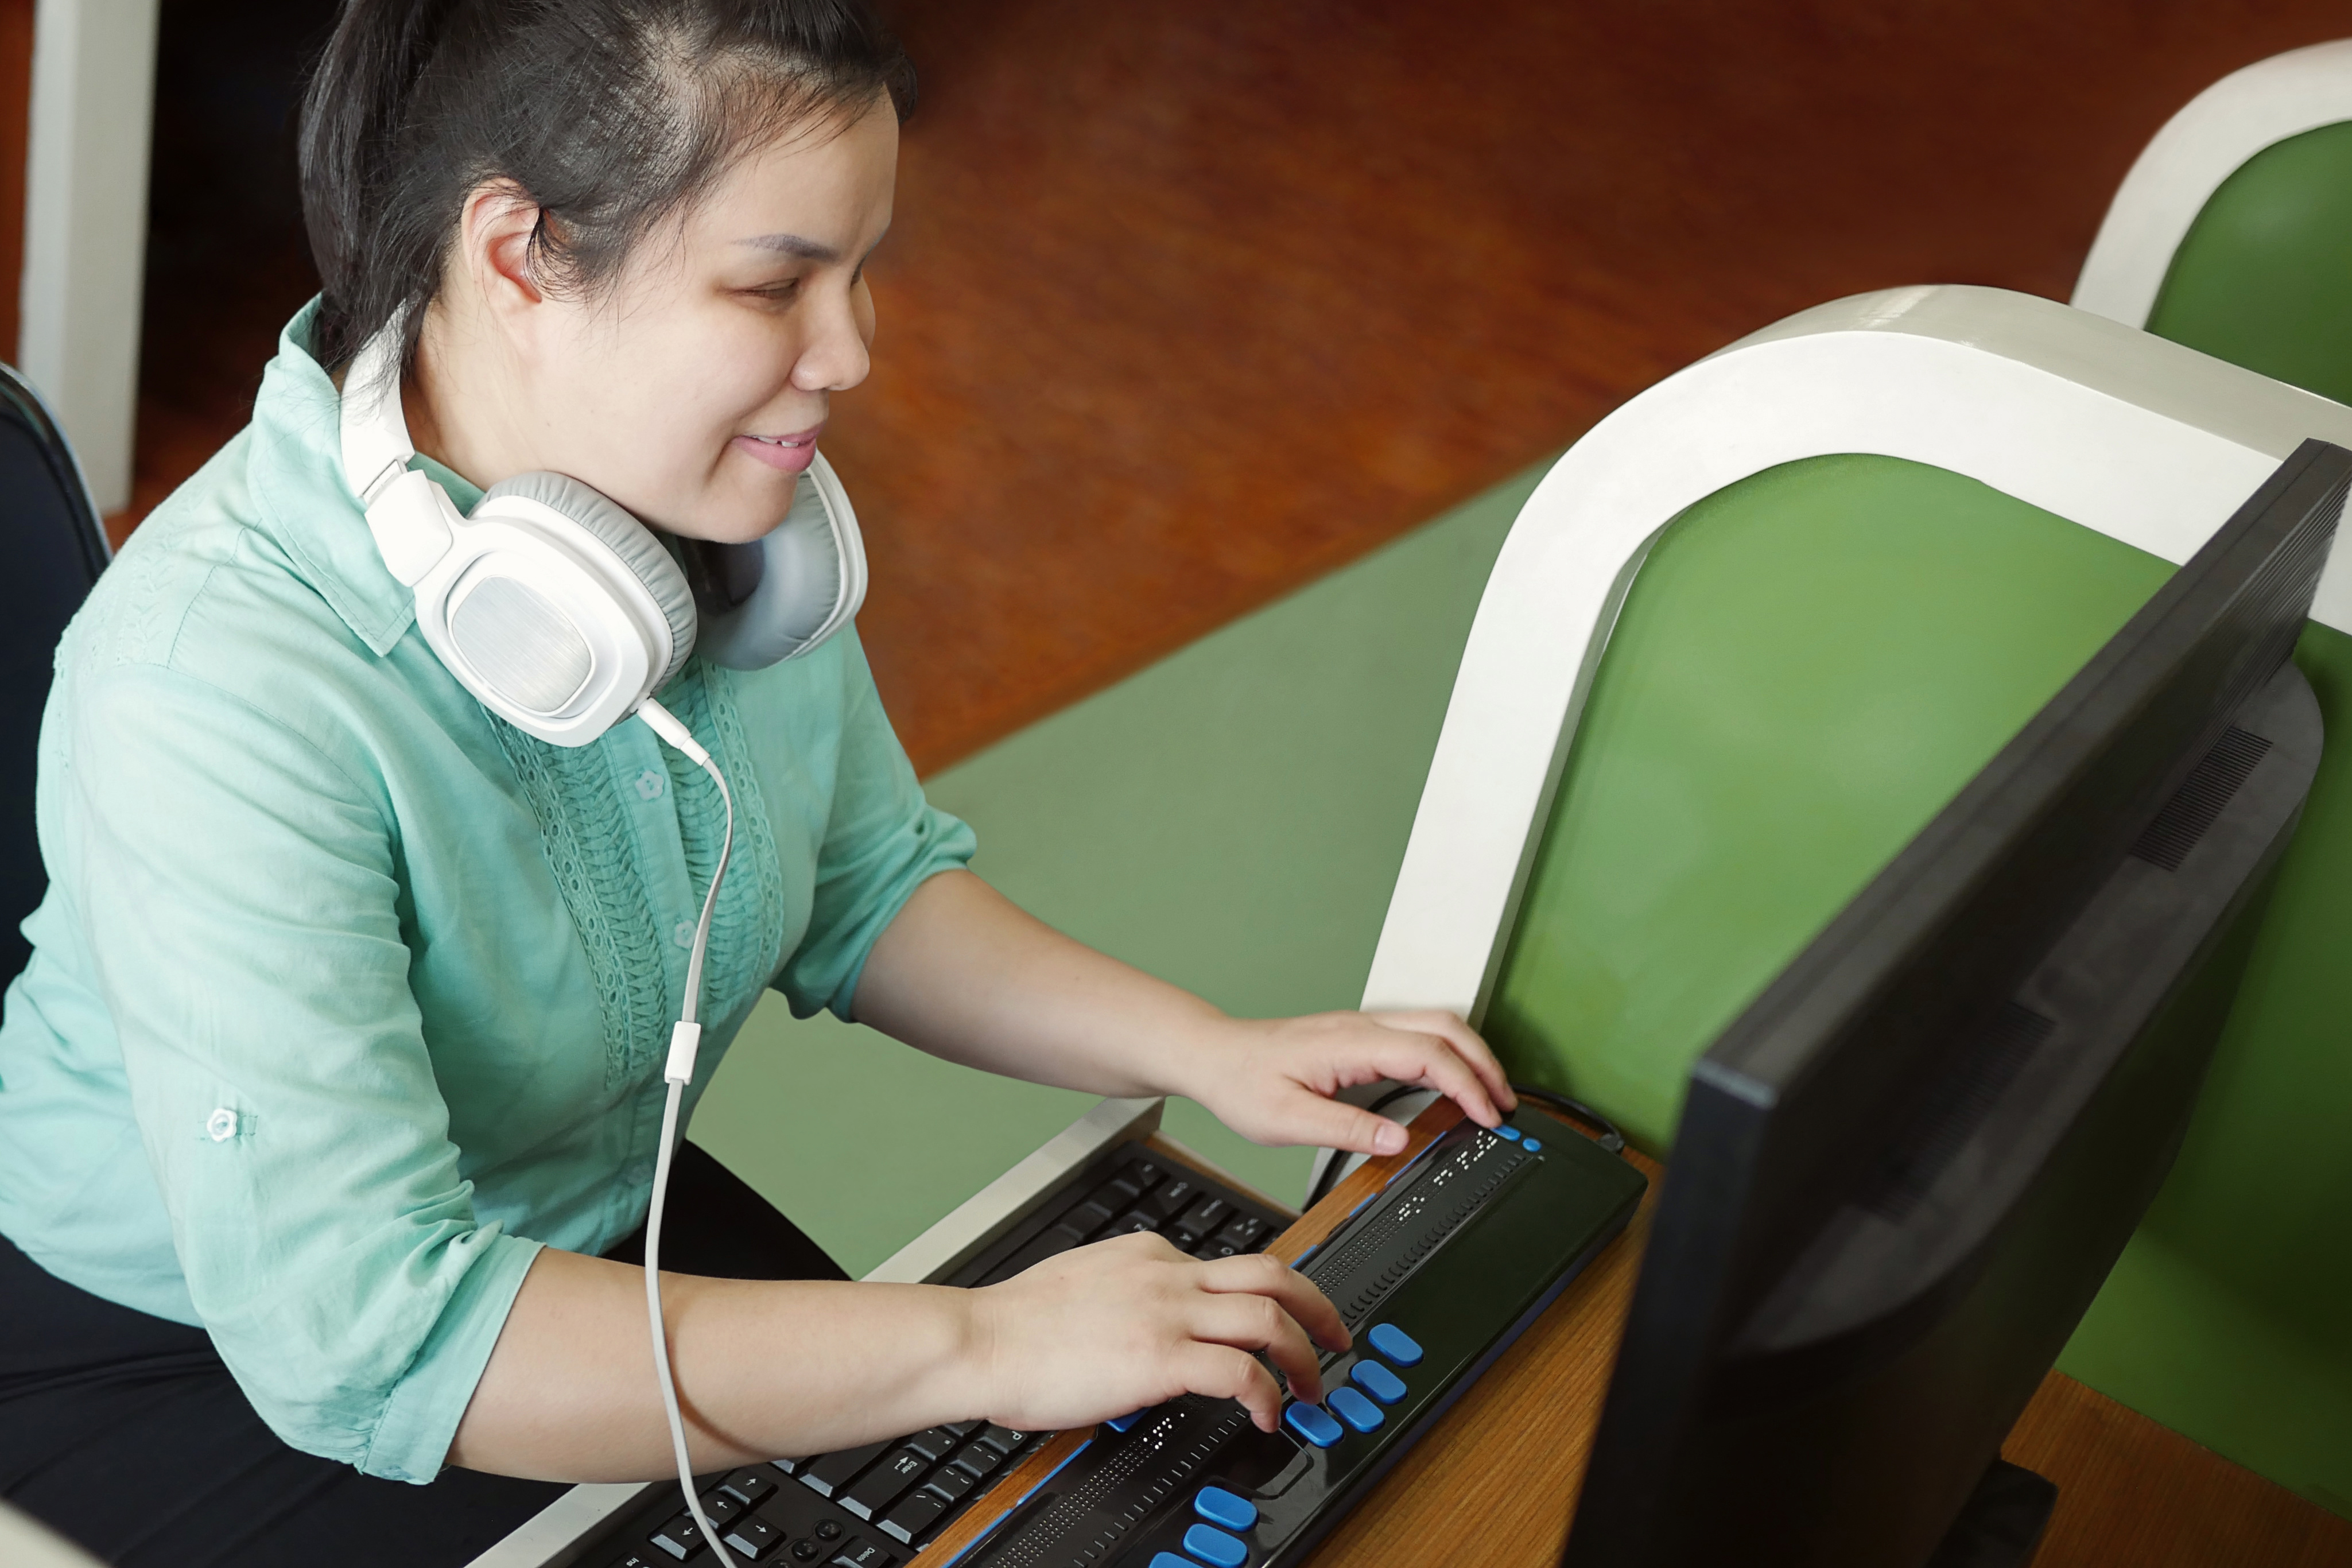 Young girl smiling while using computer using Focus 40